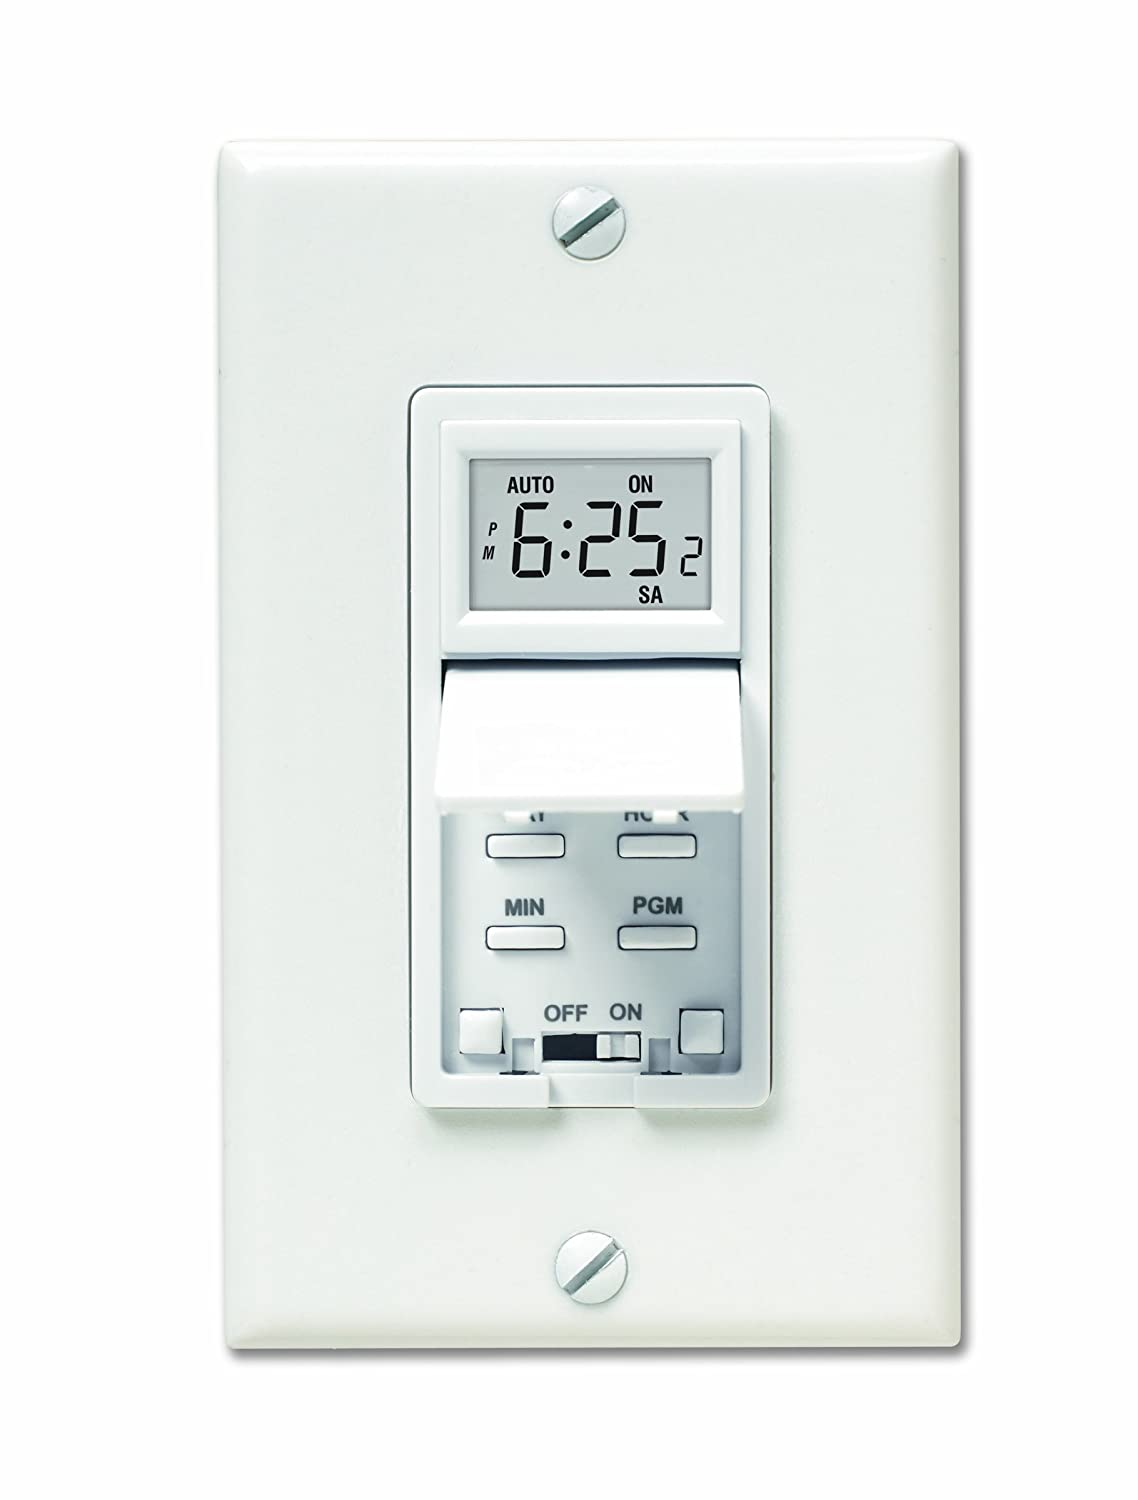 Honeywell Rpls530a 7 Day Programmable Timer Switch White Requires Live Well Wiring Diagram 40 W Minimum Wall Switches